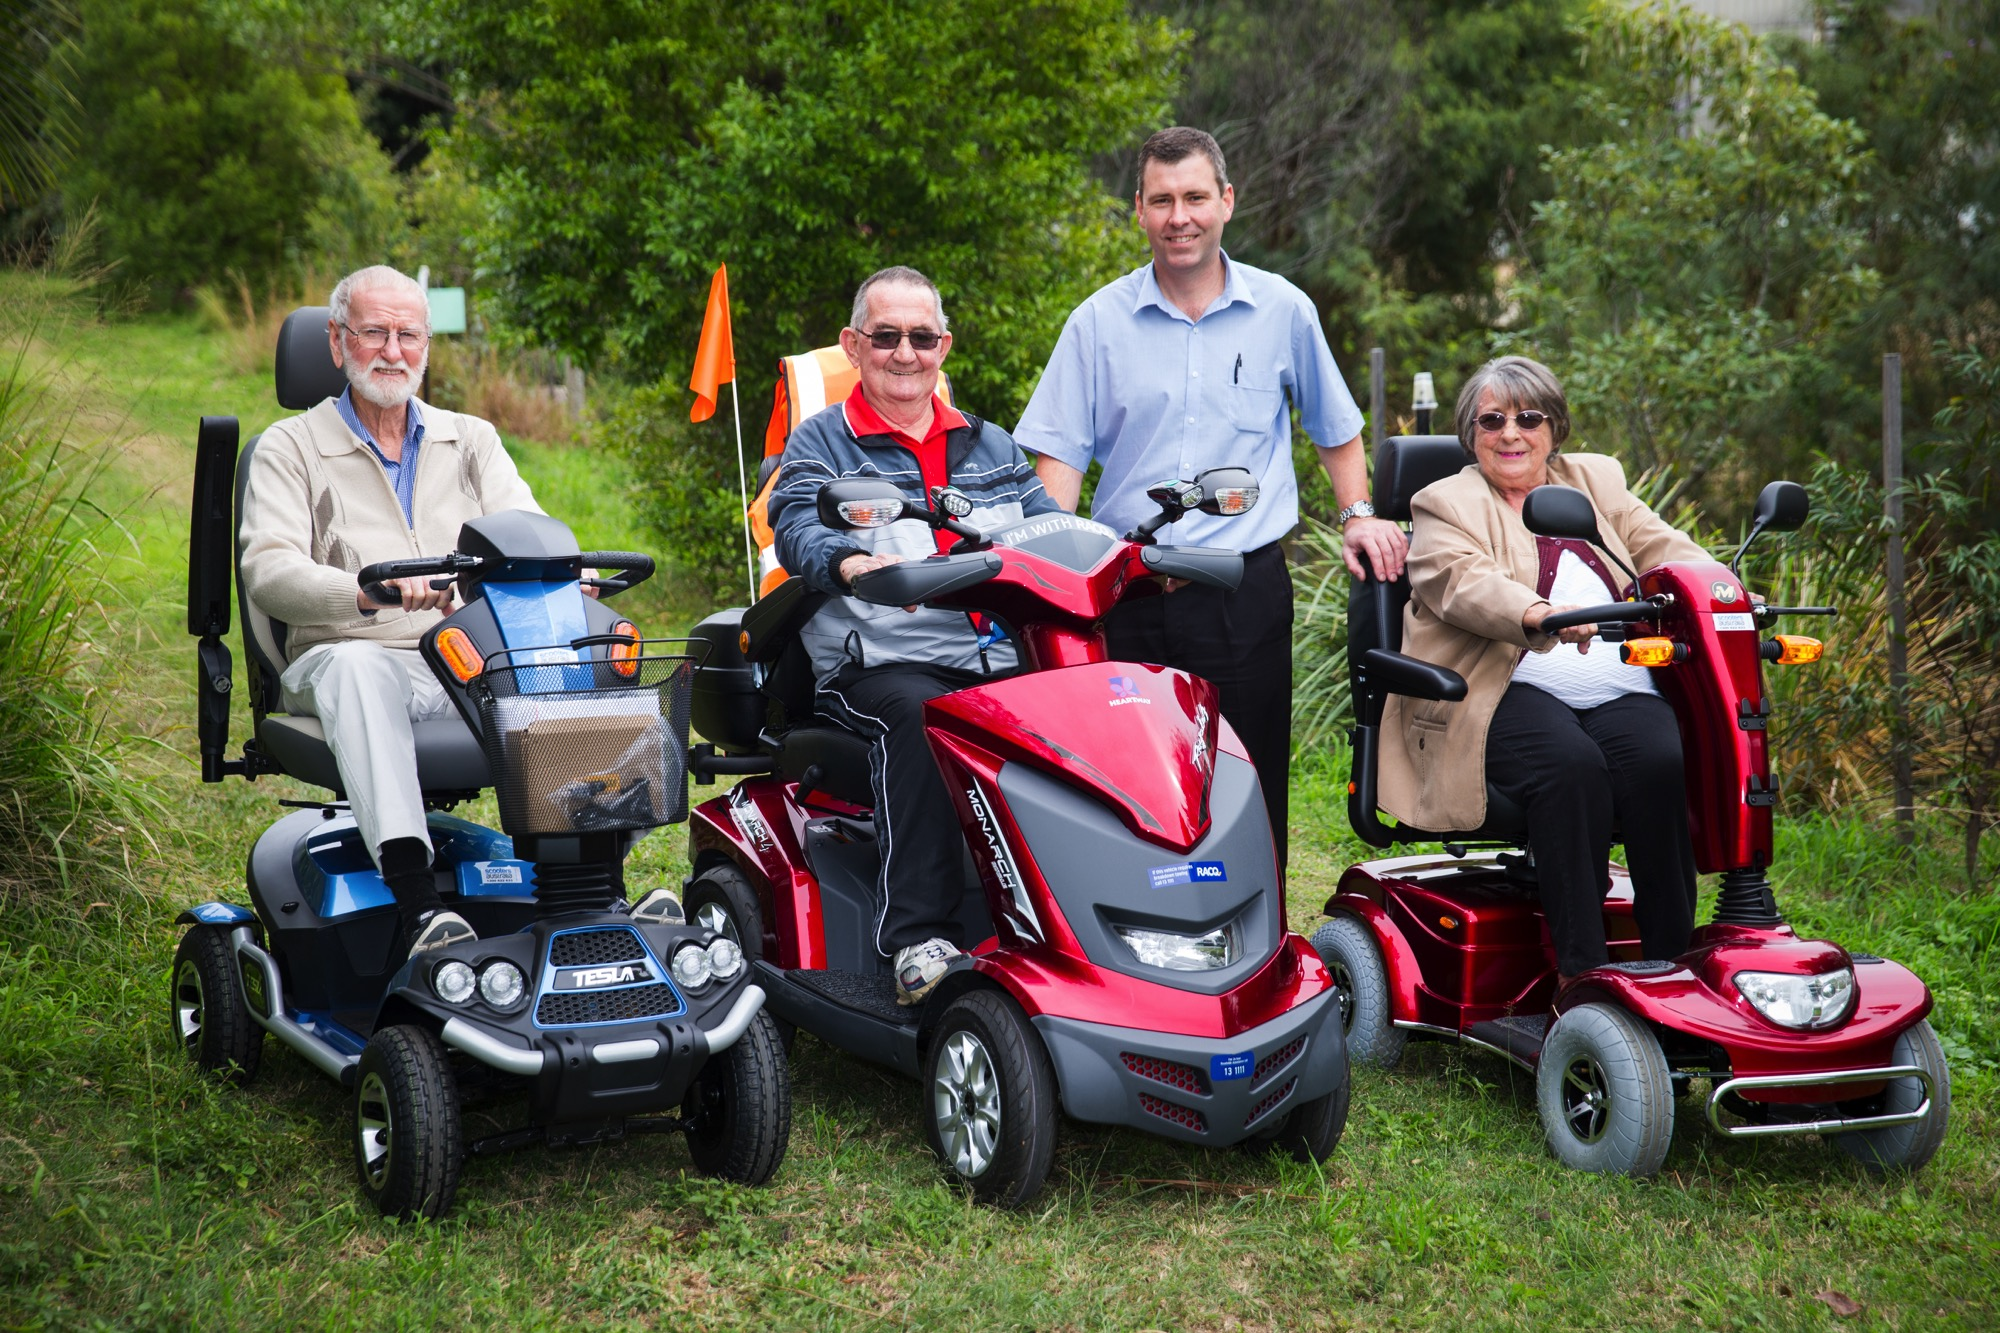 An Image Of John, From Scooters Australia Brisbane, And Three Customers On Their Electric Mobility Scooters.